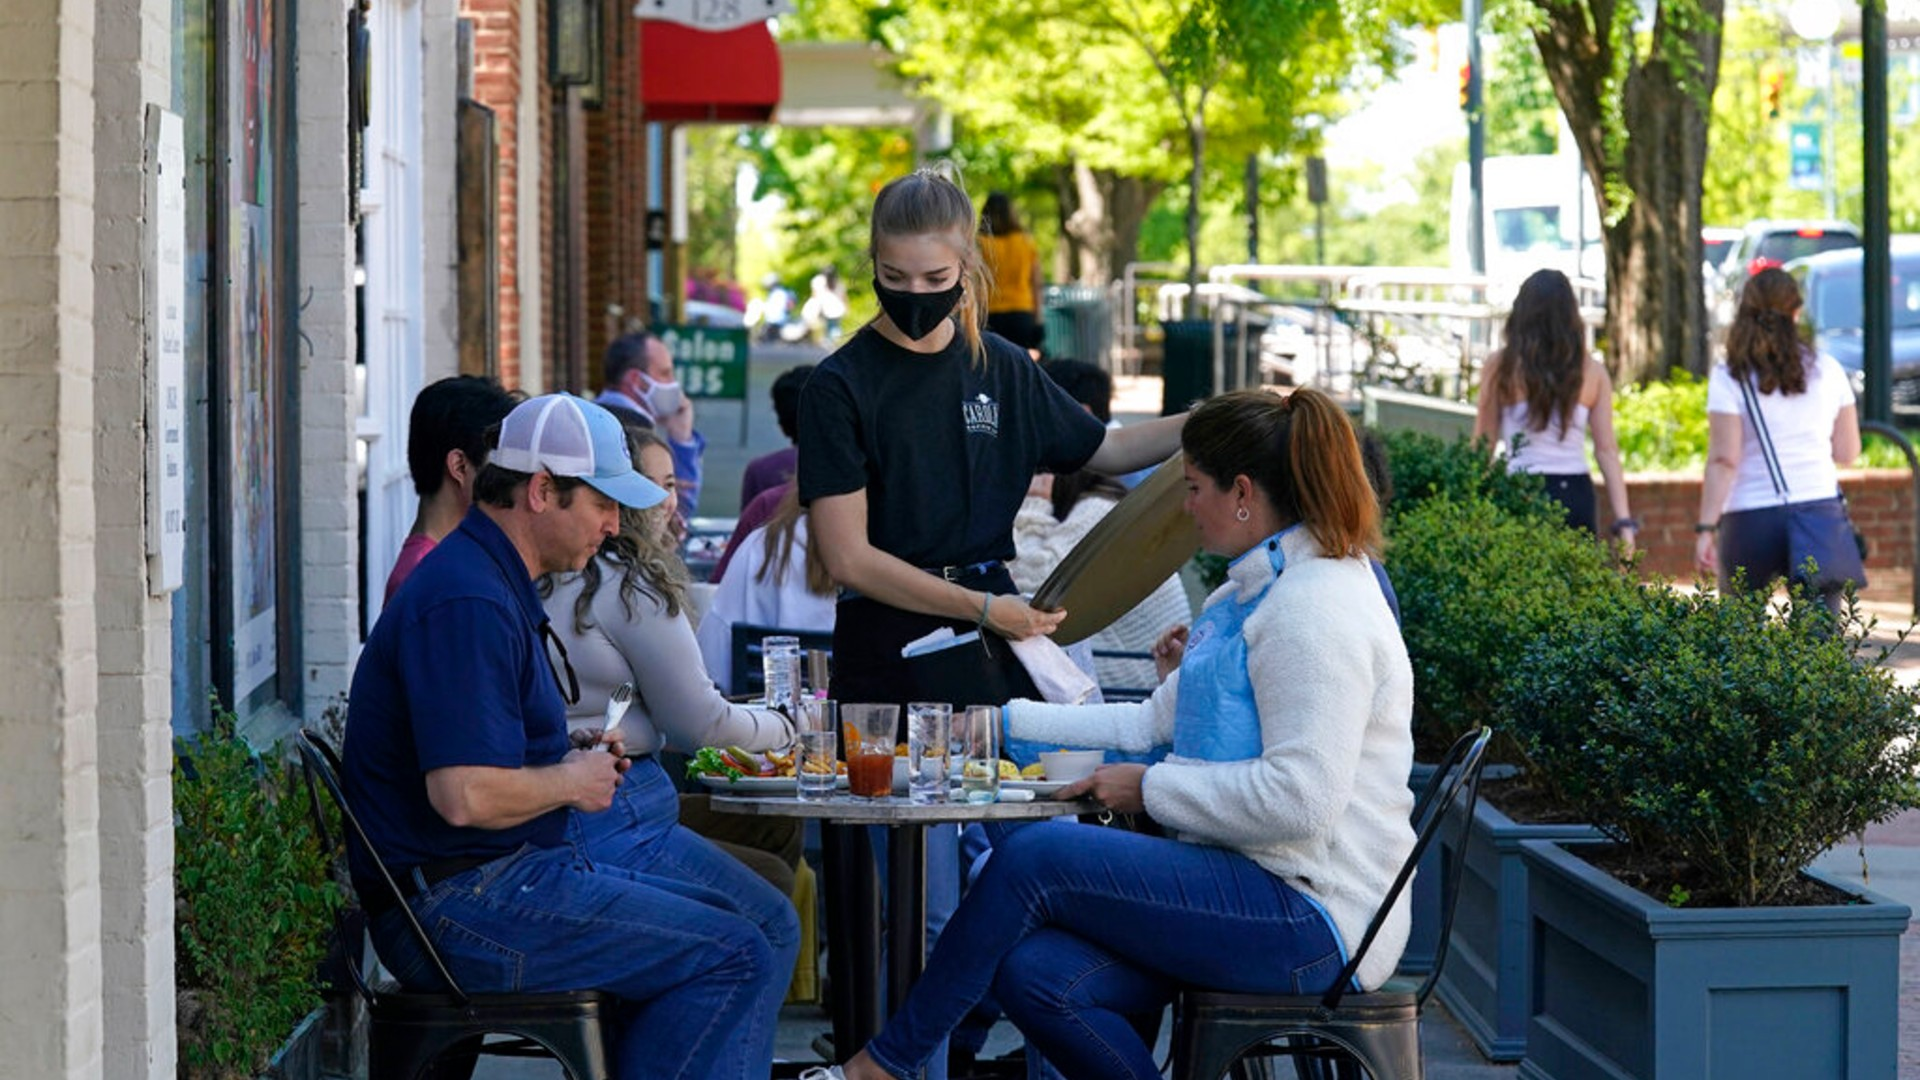 Patrons are assisted while dining along a sidewalk on Franklin Street in Chapel Hill, N.C., Friday, April 16, 2021. (AP Photo/Gerry Broome)